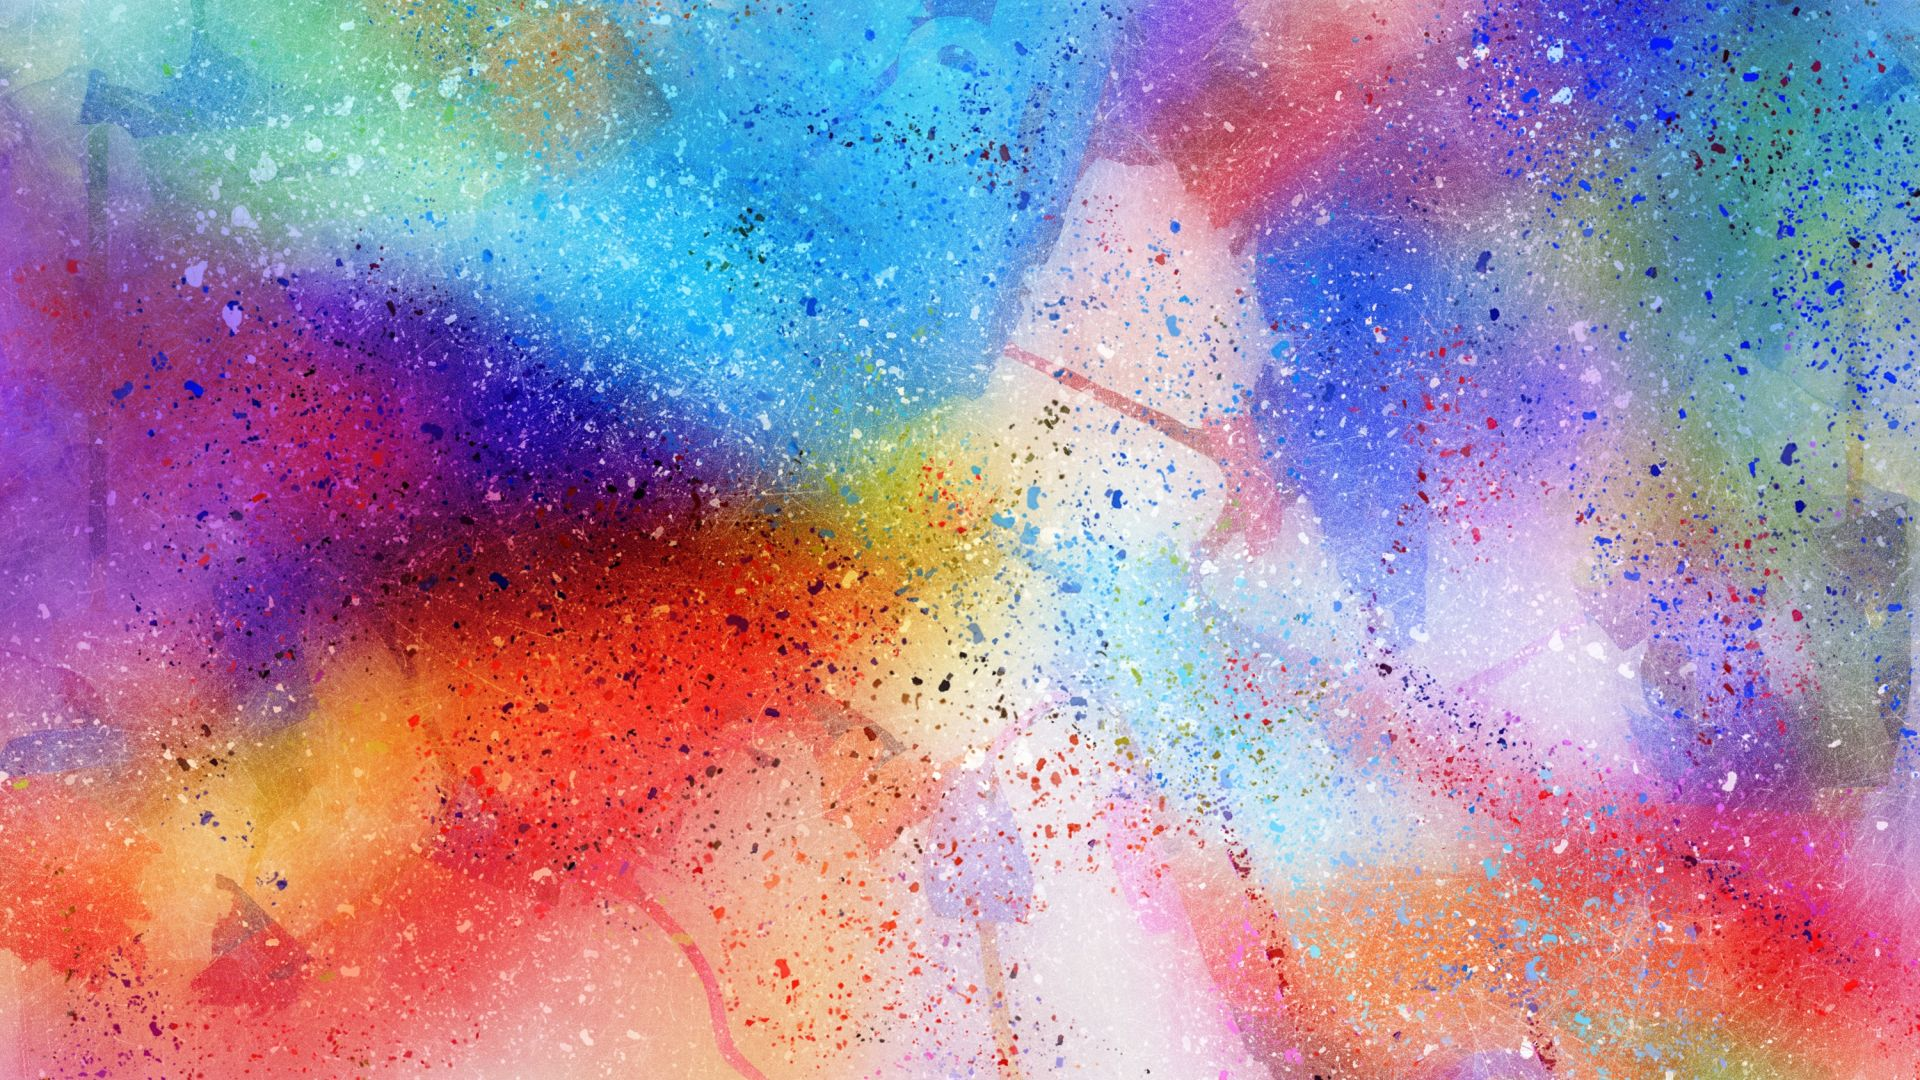 Abstract, colorful, surface